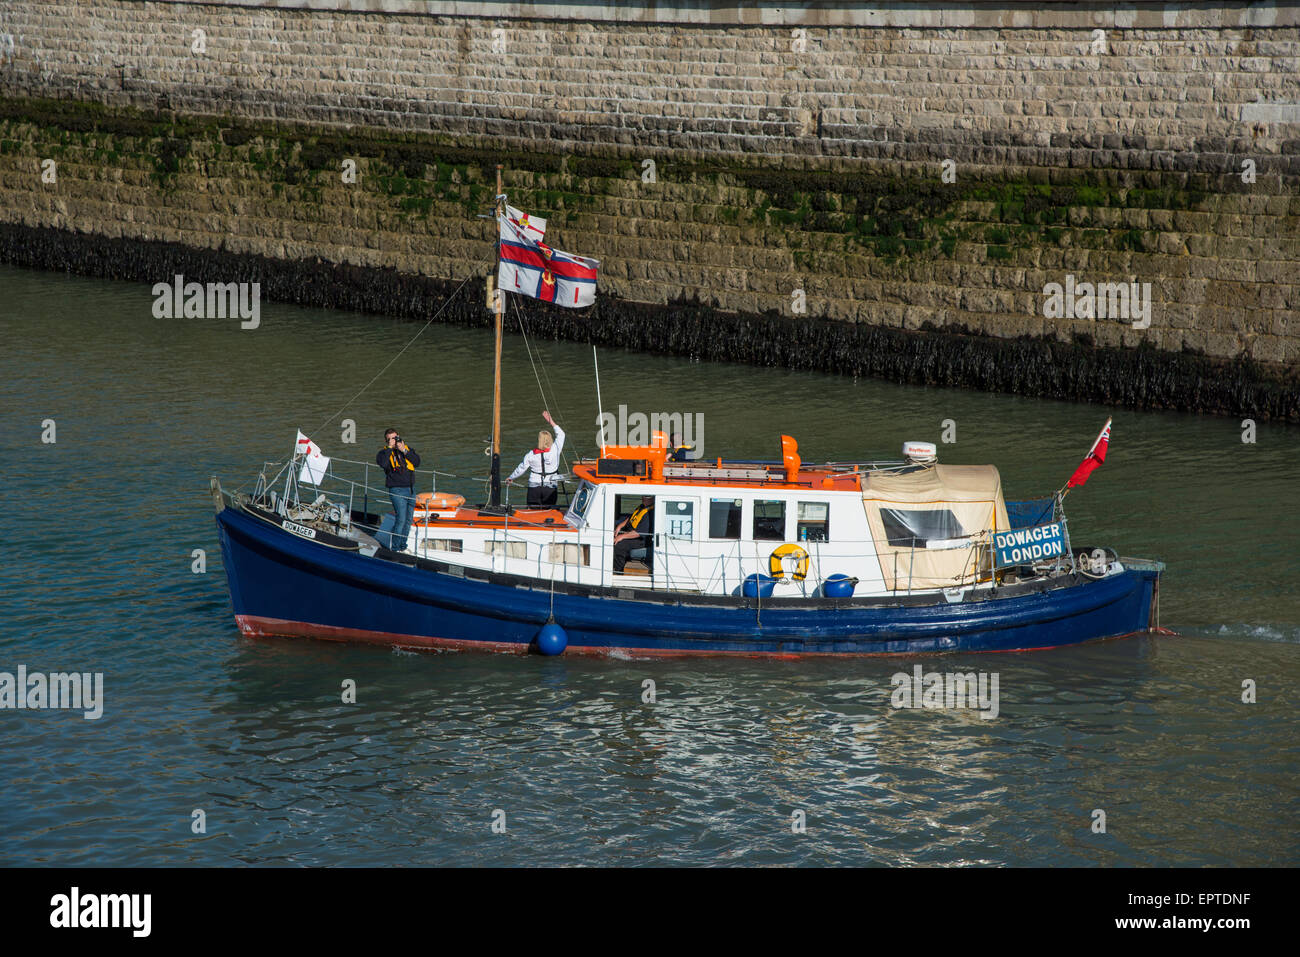 Ramsgate, Kent 21 May 2015. Dowager (previously the Shoreham Lifeboat Rosa Woodd and Phyllis Lunn) leaving Ramsgate - Stock Image